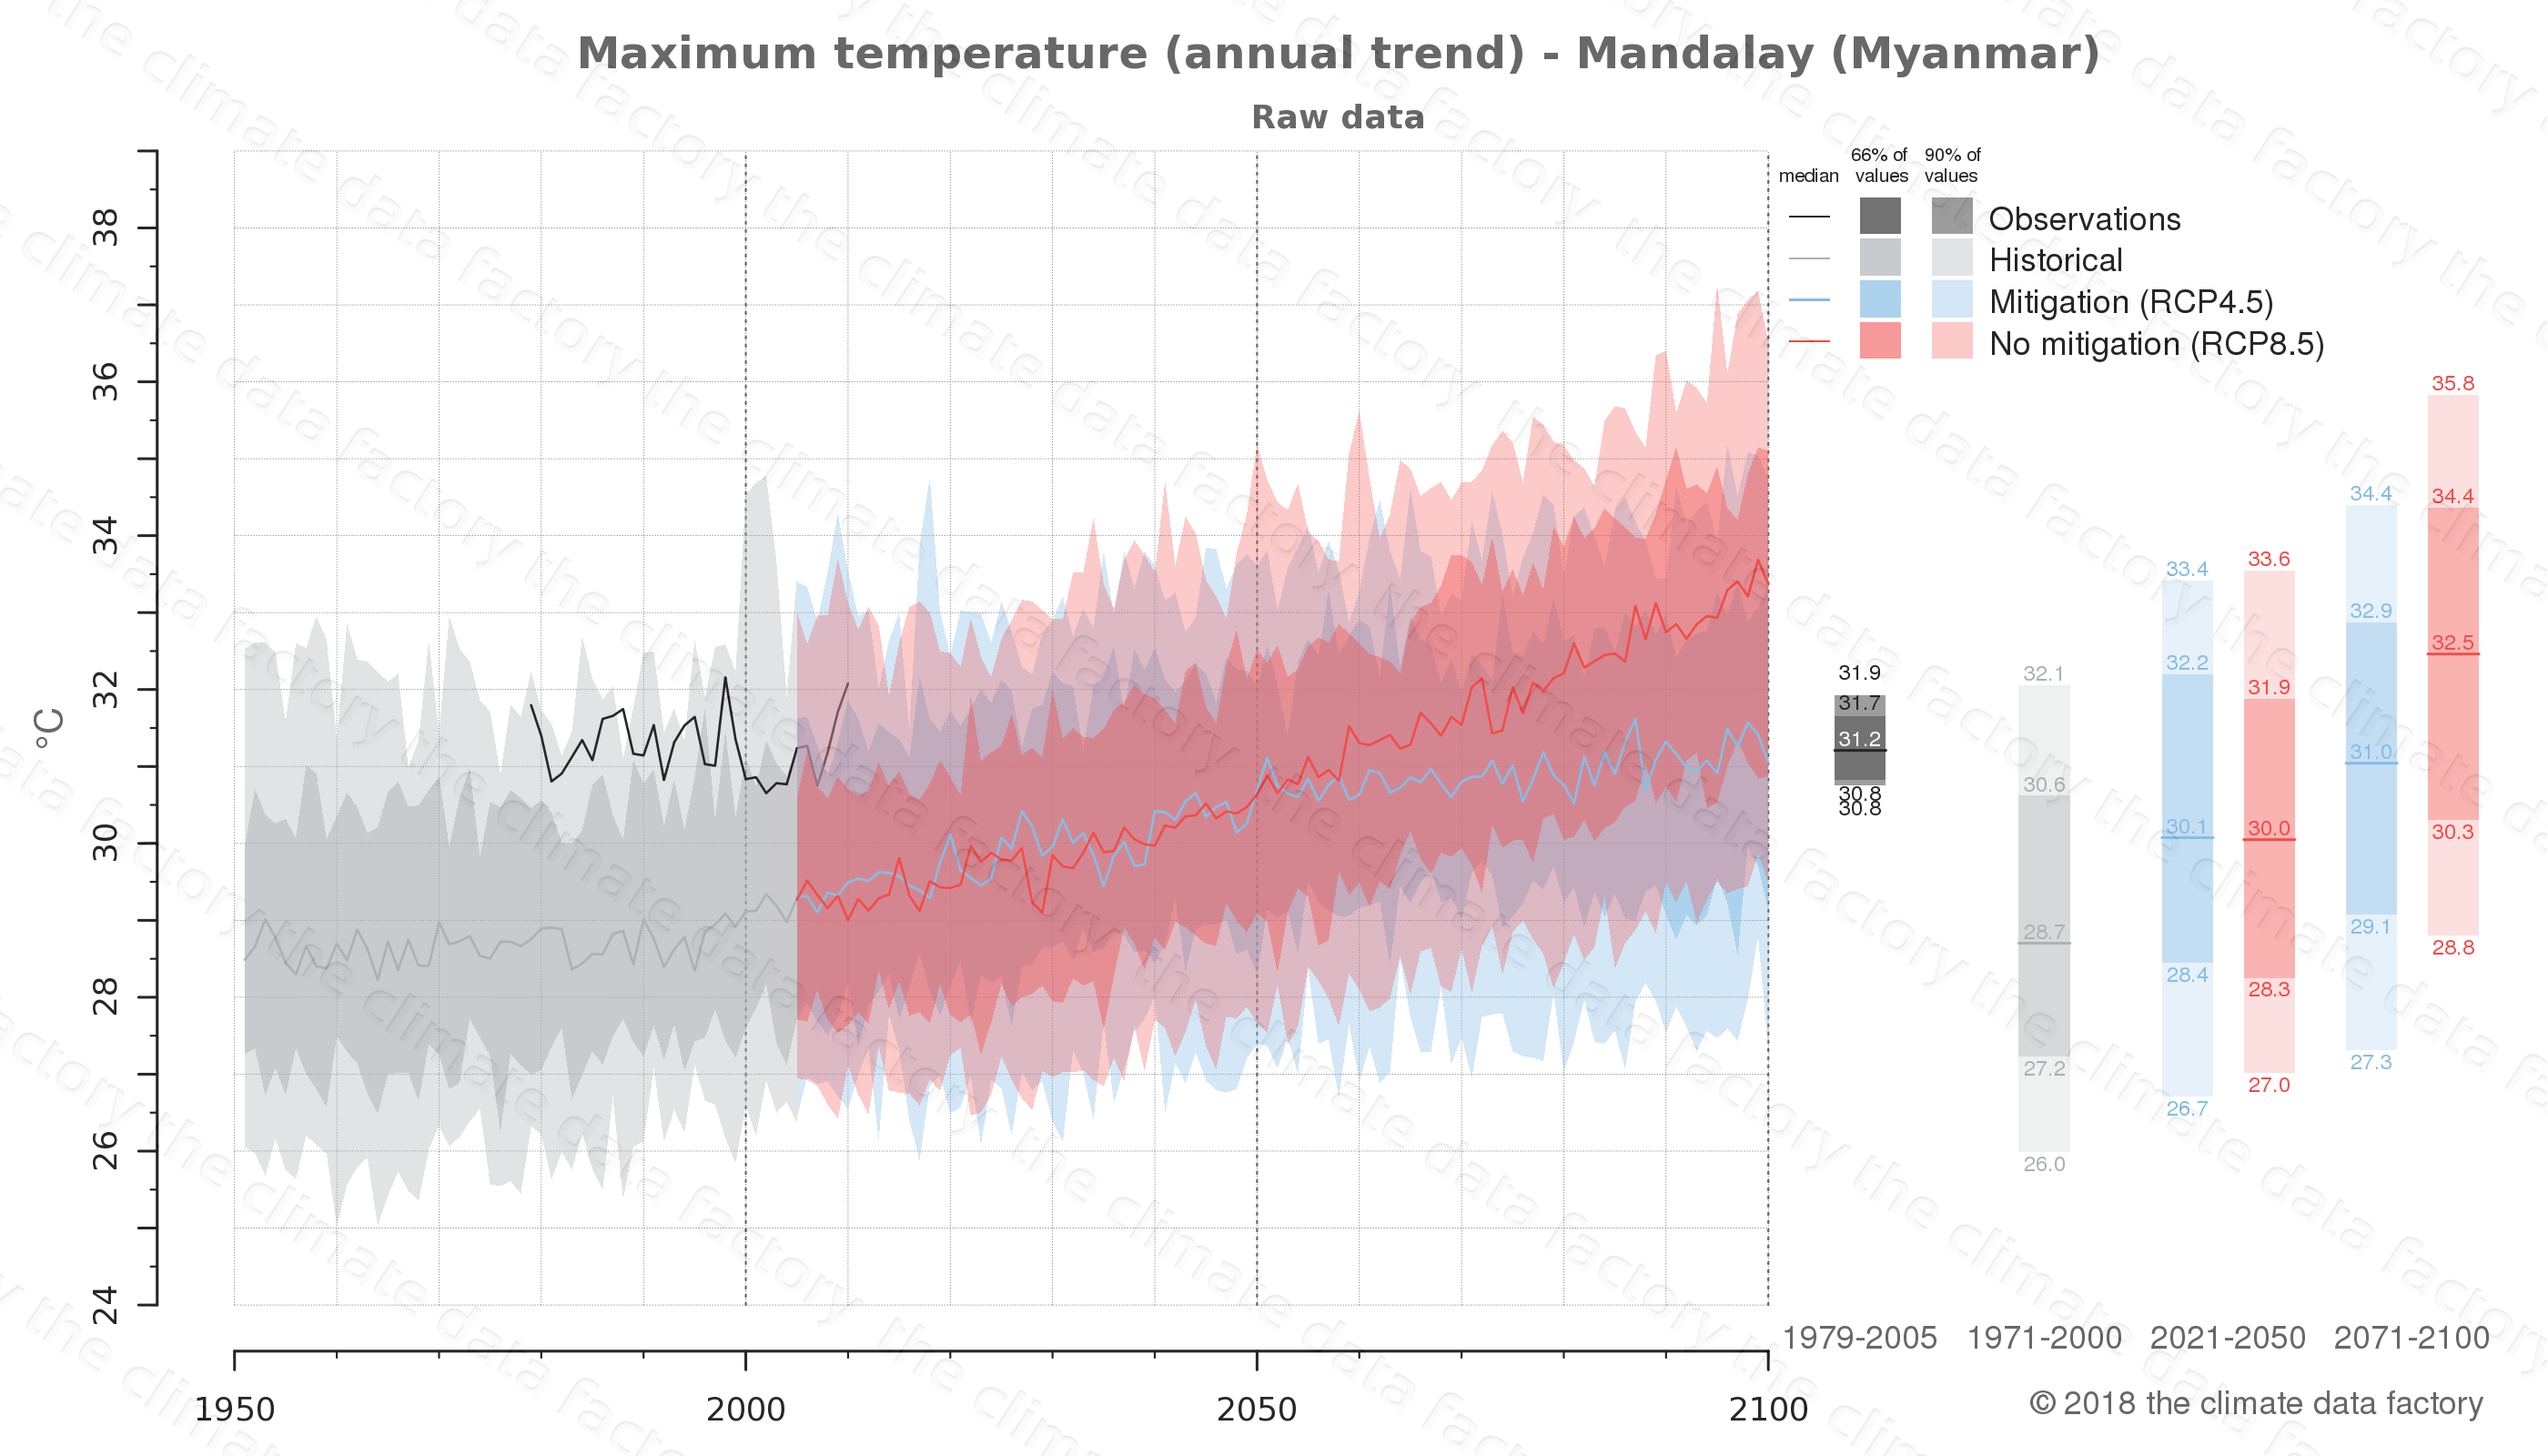 climate change data policy adaptation climate graph city data maximum-temperature mandalay myanmar